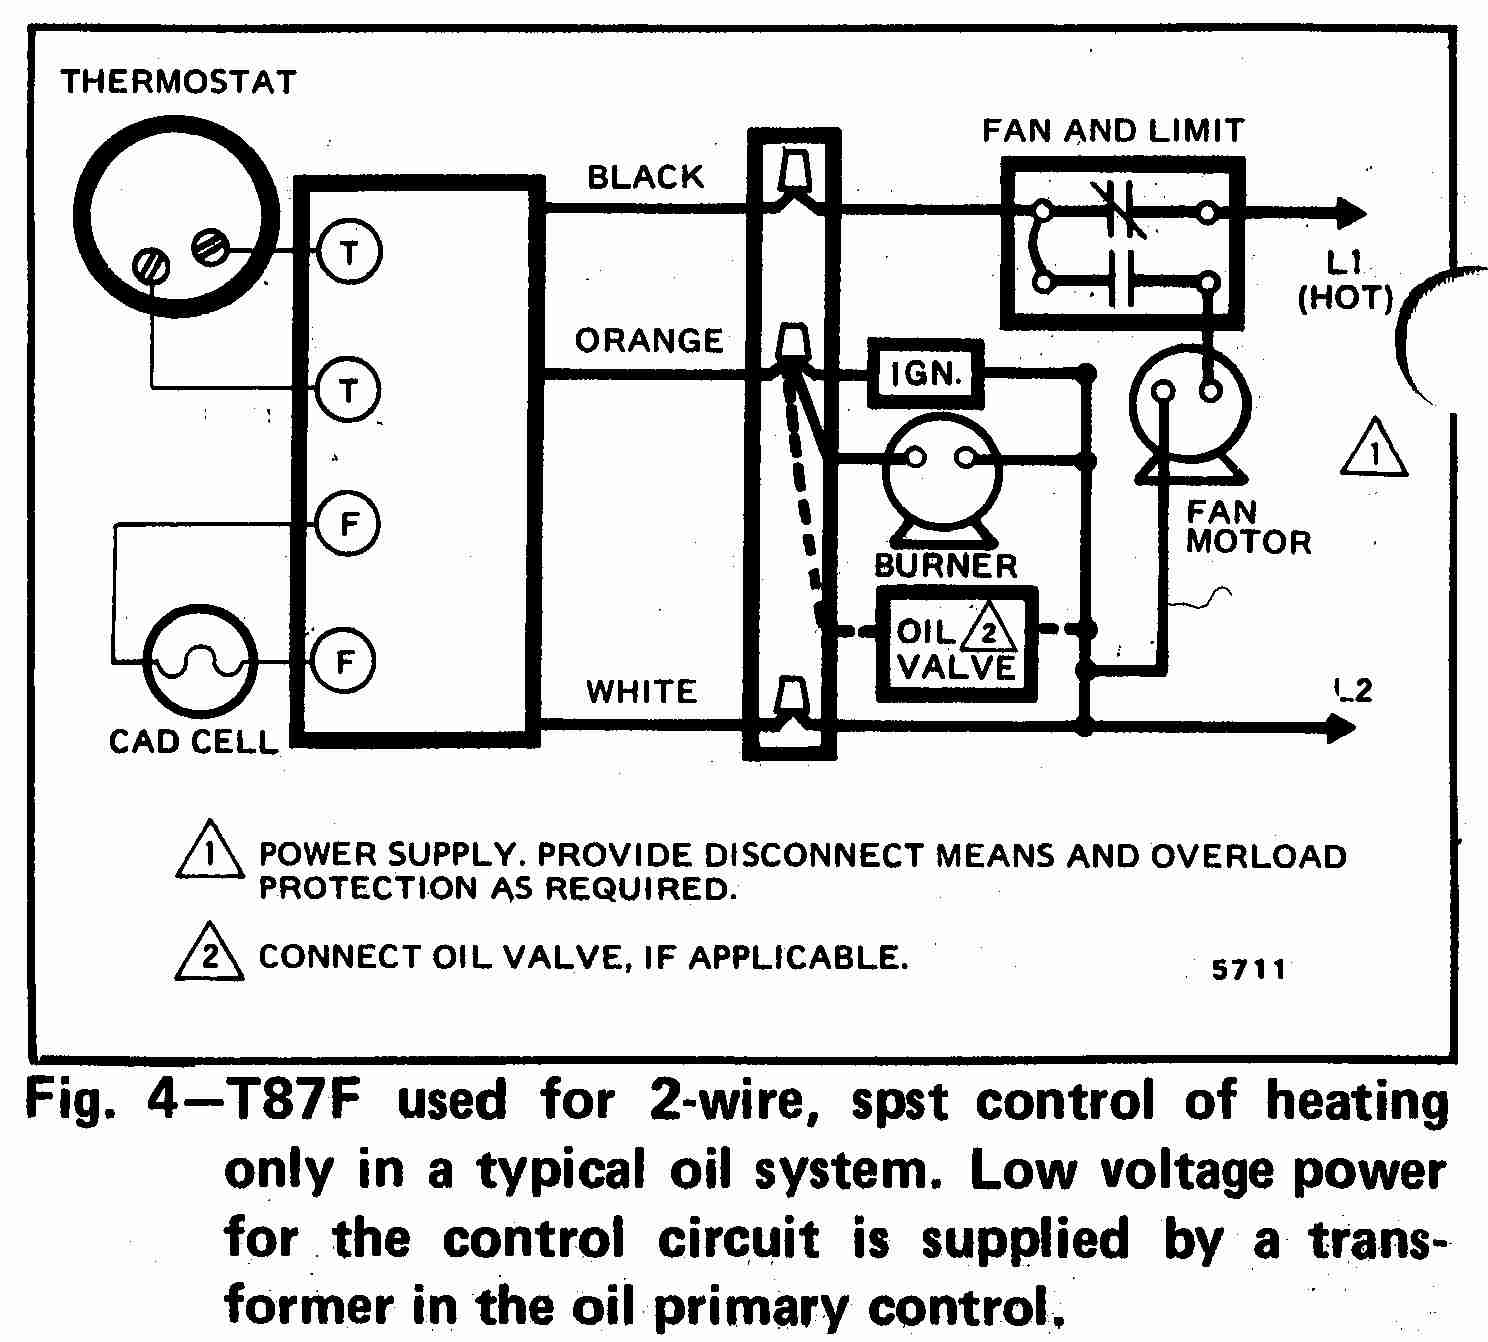 room thermostat wiring diagrams for hvac systems rh inspectapedia com Thermostat Wiring Color Code Thermostat Wiring Color Code